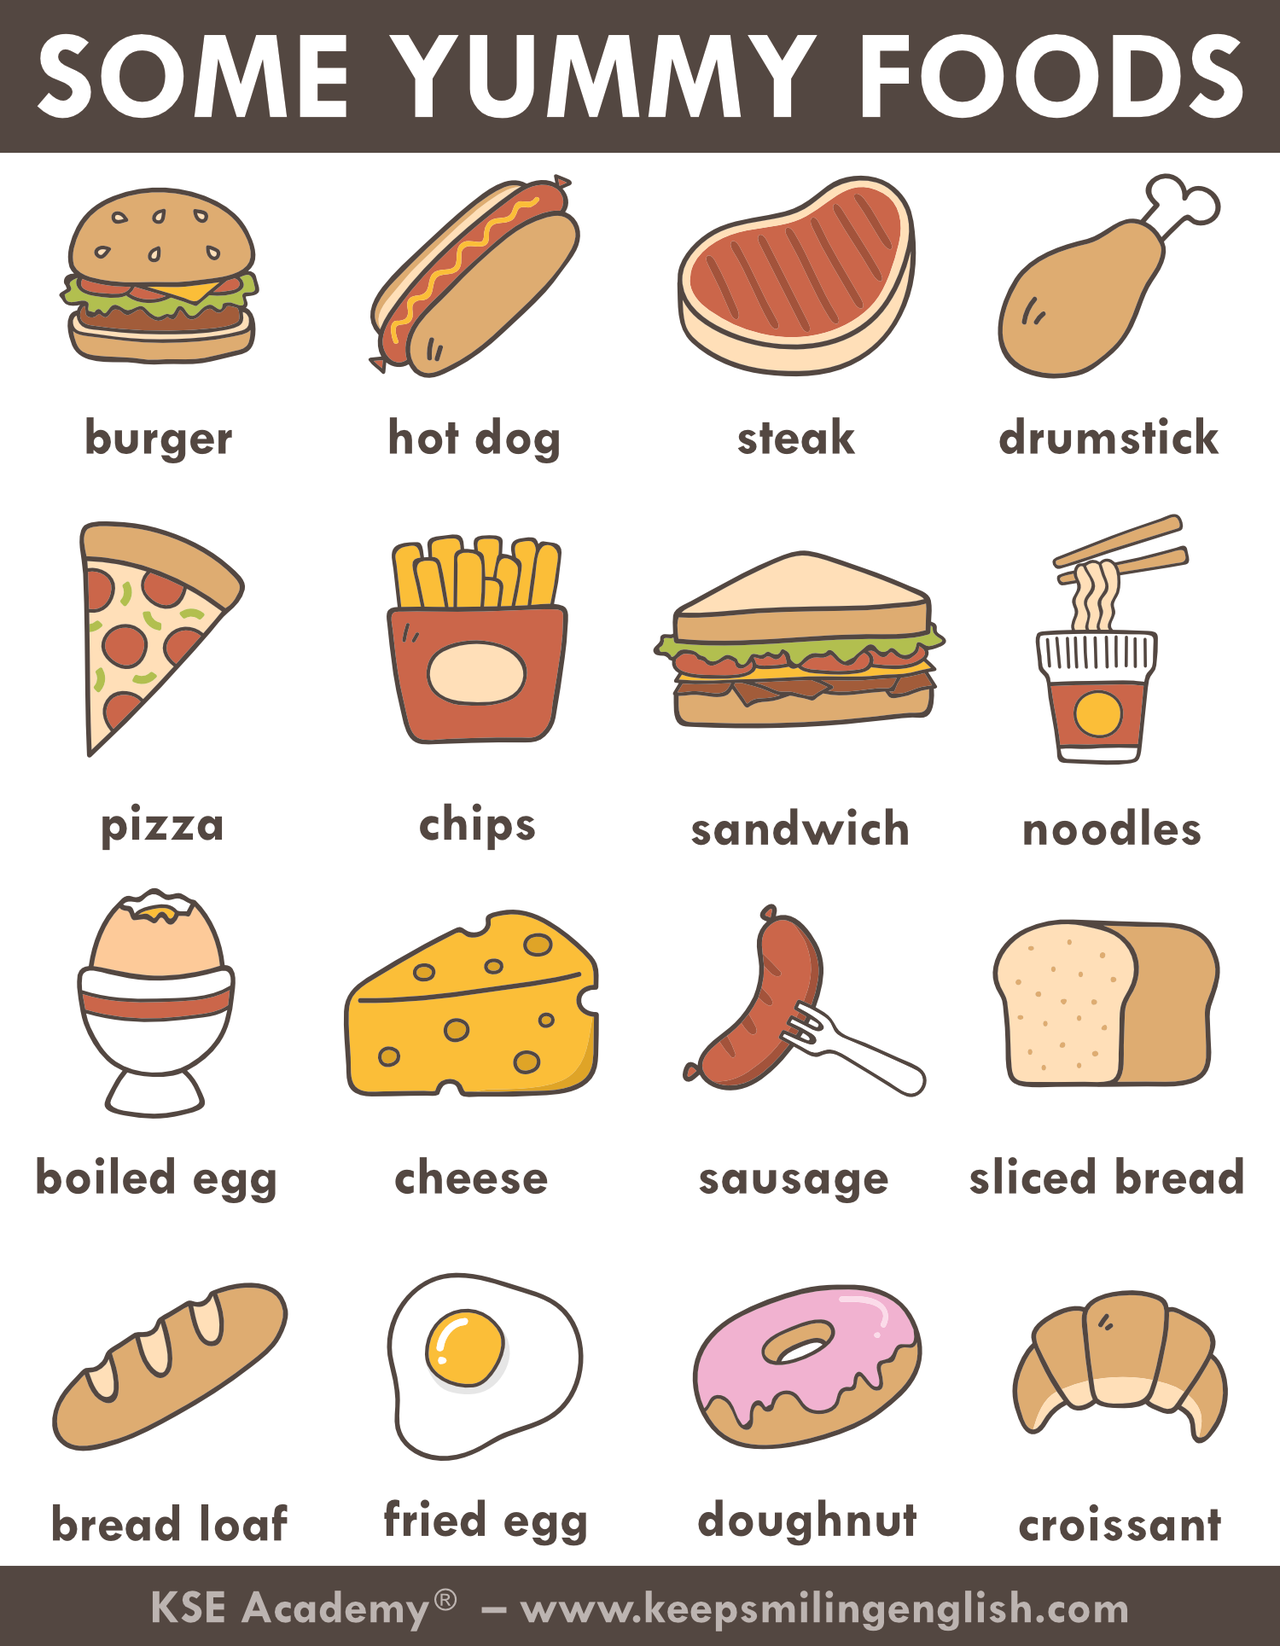 Just Some Yummy Foods Food Vocabulary Yummyfood